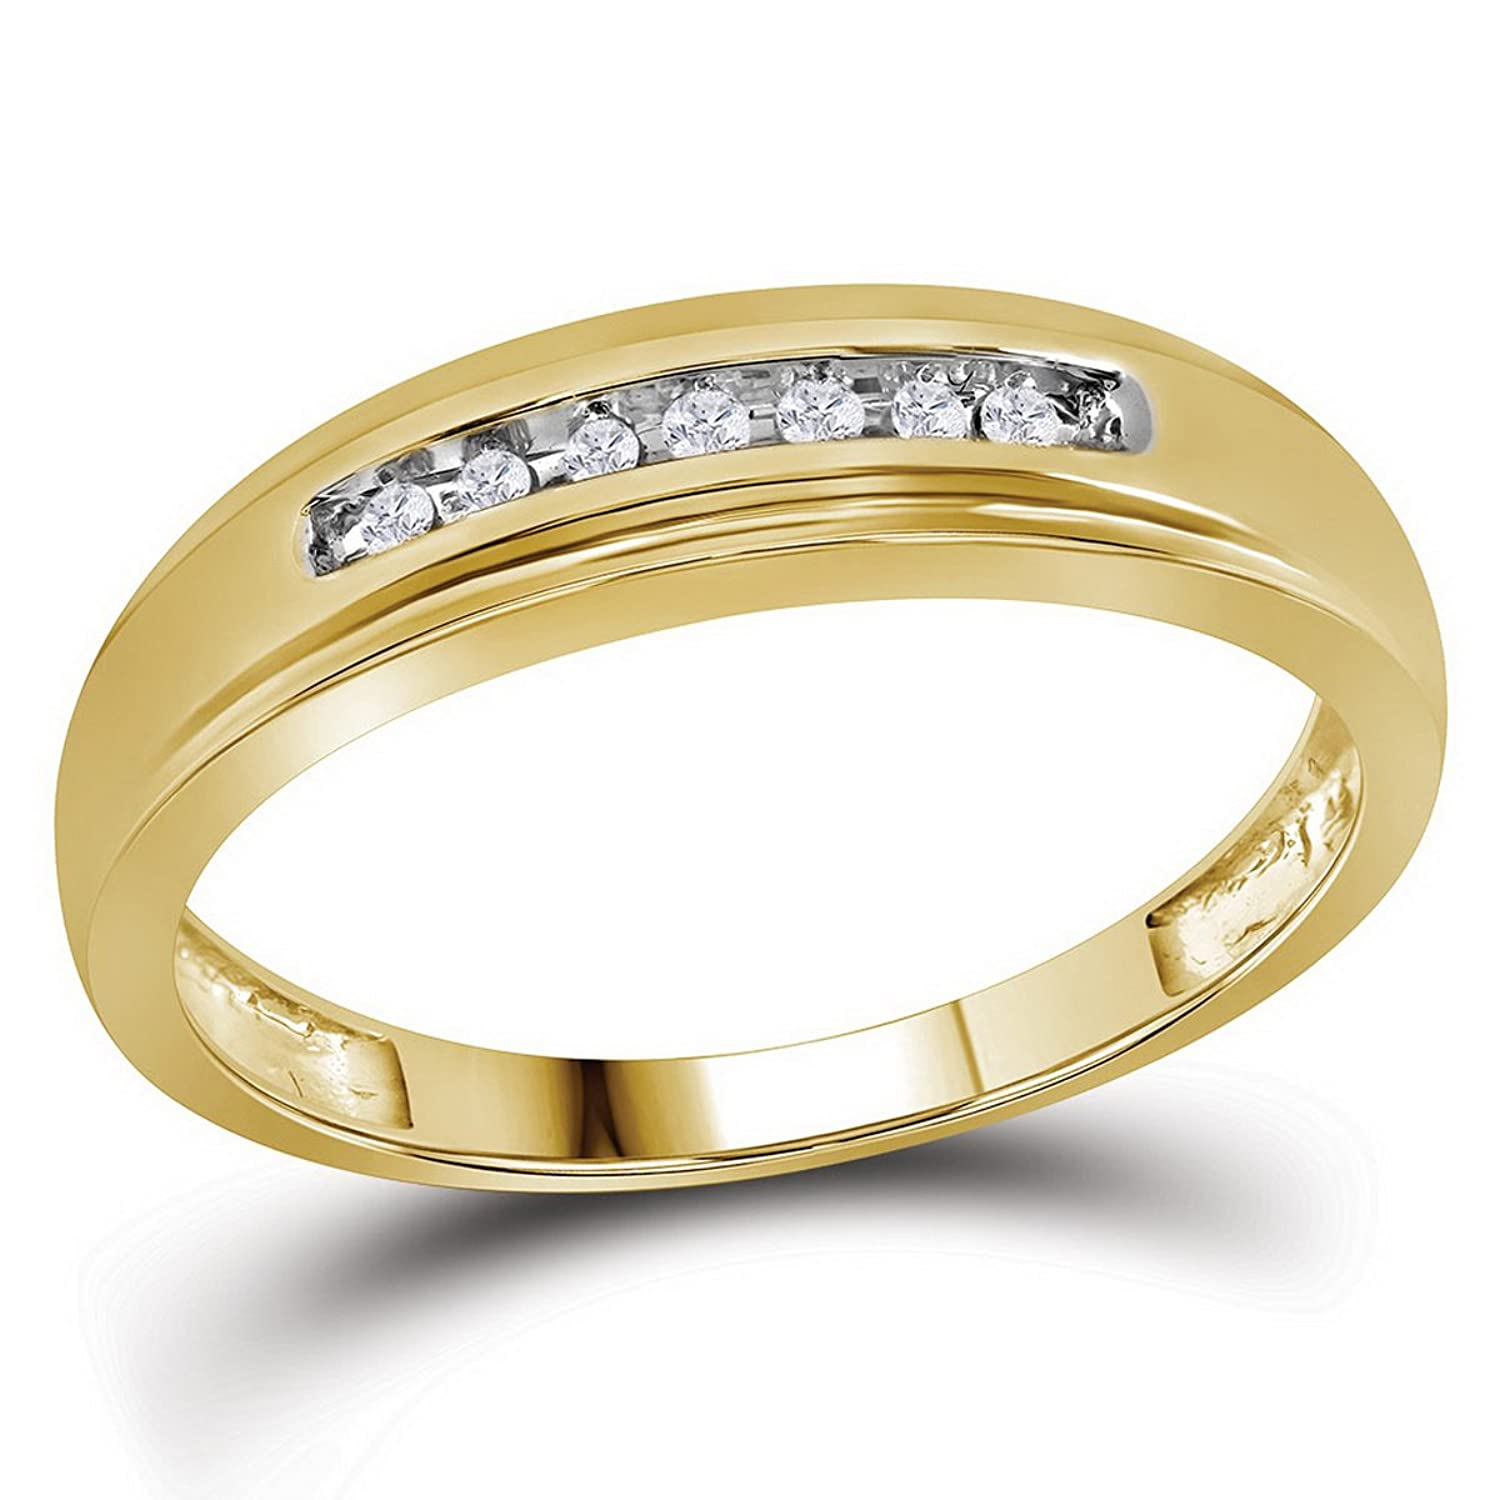 10kt Yellow Gold Mens Round Diamond Wedding Anniversary Band Ring 1/12 Cttw (I2-I3 clarity; J-K color)